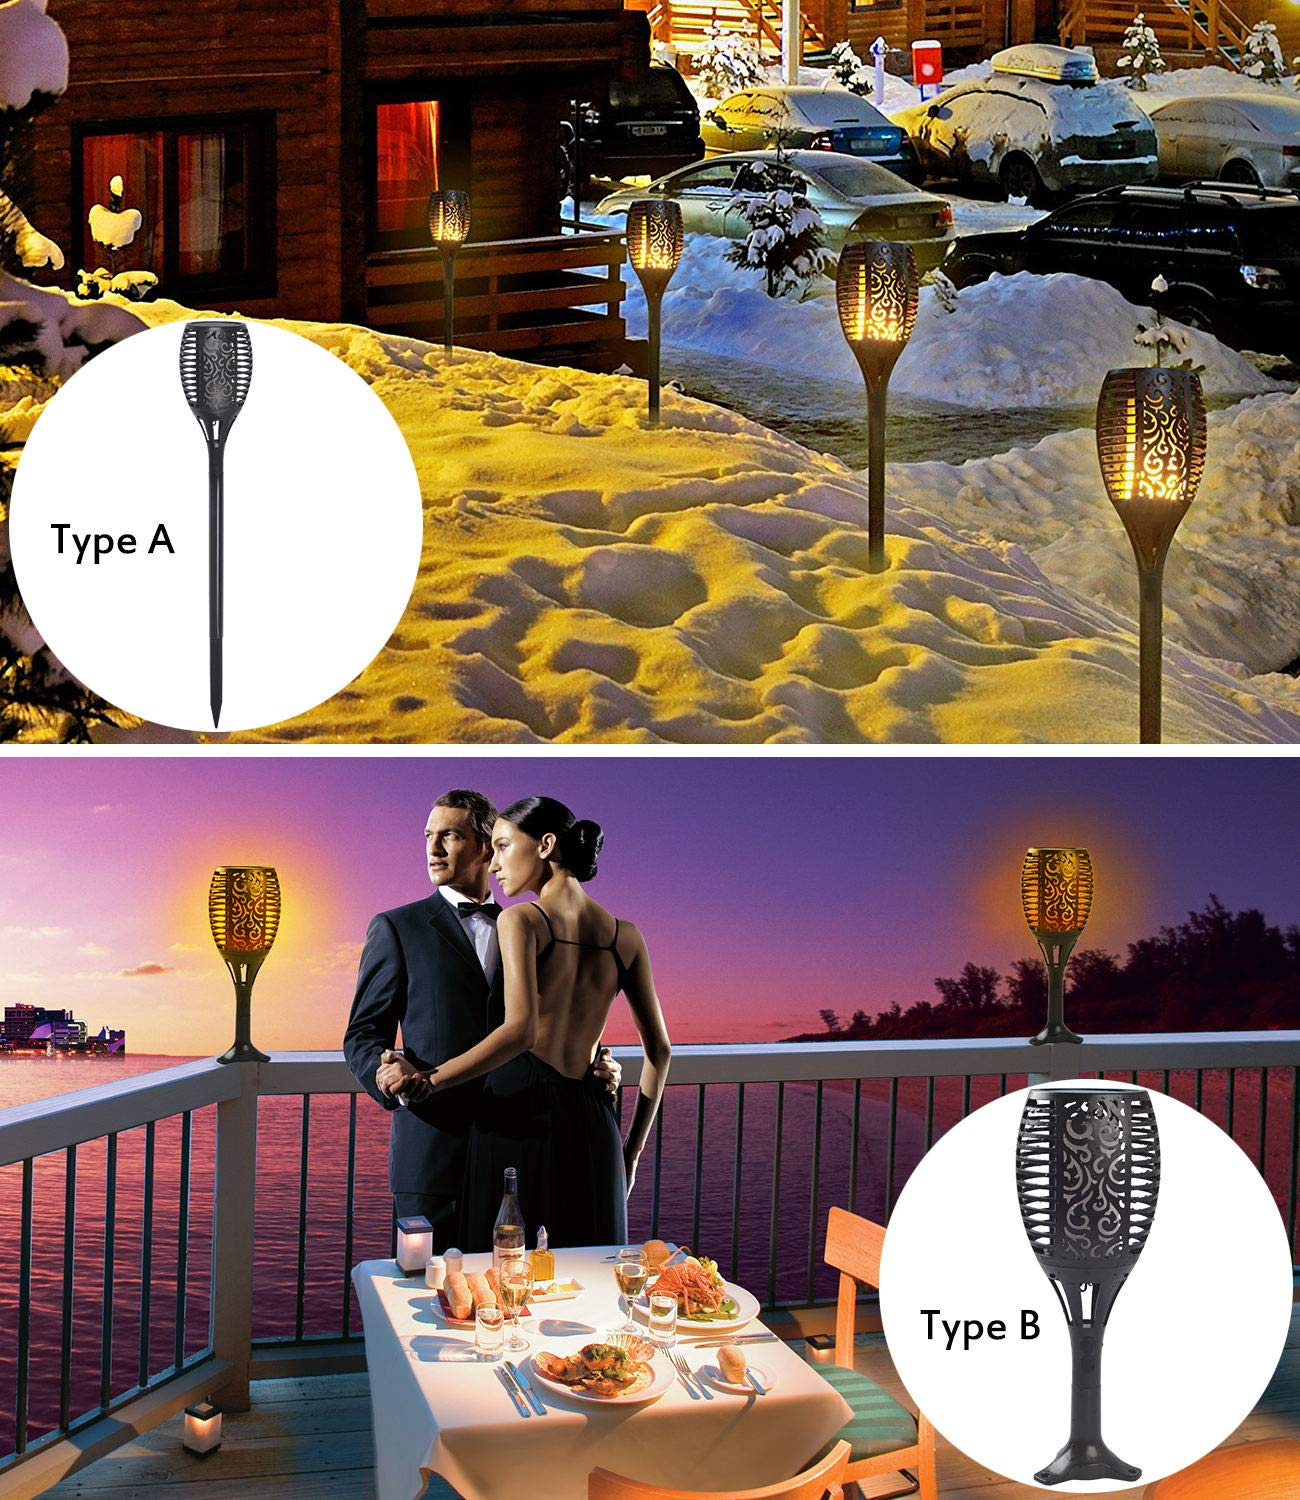 """Solar Torch Lights, Waterproof Flickering Flame Solar Torches Dancing Flames Landscape USB Charging Decoration Lighting Dusk to Dawn Outdoor Security Path Light for Garden Patio Yard Driveway 2 Pack - 🔥GORGEOUS DANCING FLAMES DESIGN: A safe alternative to the real """"flames"""" - LEDs in the light cast a safe, soft, mood-enhancing glow. Please note the actual height of the item is 31.4 inches. 🔥TWO CHARGING MODES:Different from general solar torch light, it could powred by Solar energy and USB Charging,you can place it anywhereonce powered, no matter in sunny day,in winter, rainy day or cloudy day. 🔥THREE EASY INSTALLATION: Pathway, Floor, Table available. No wiring required, simply install it anywhere you like and enjoy the warm torch light. - patio, outdoor-lights, outdoor-decor - 81FXK3q9GUL -"""